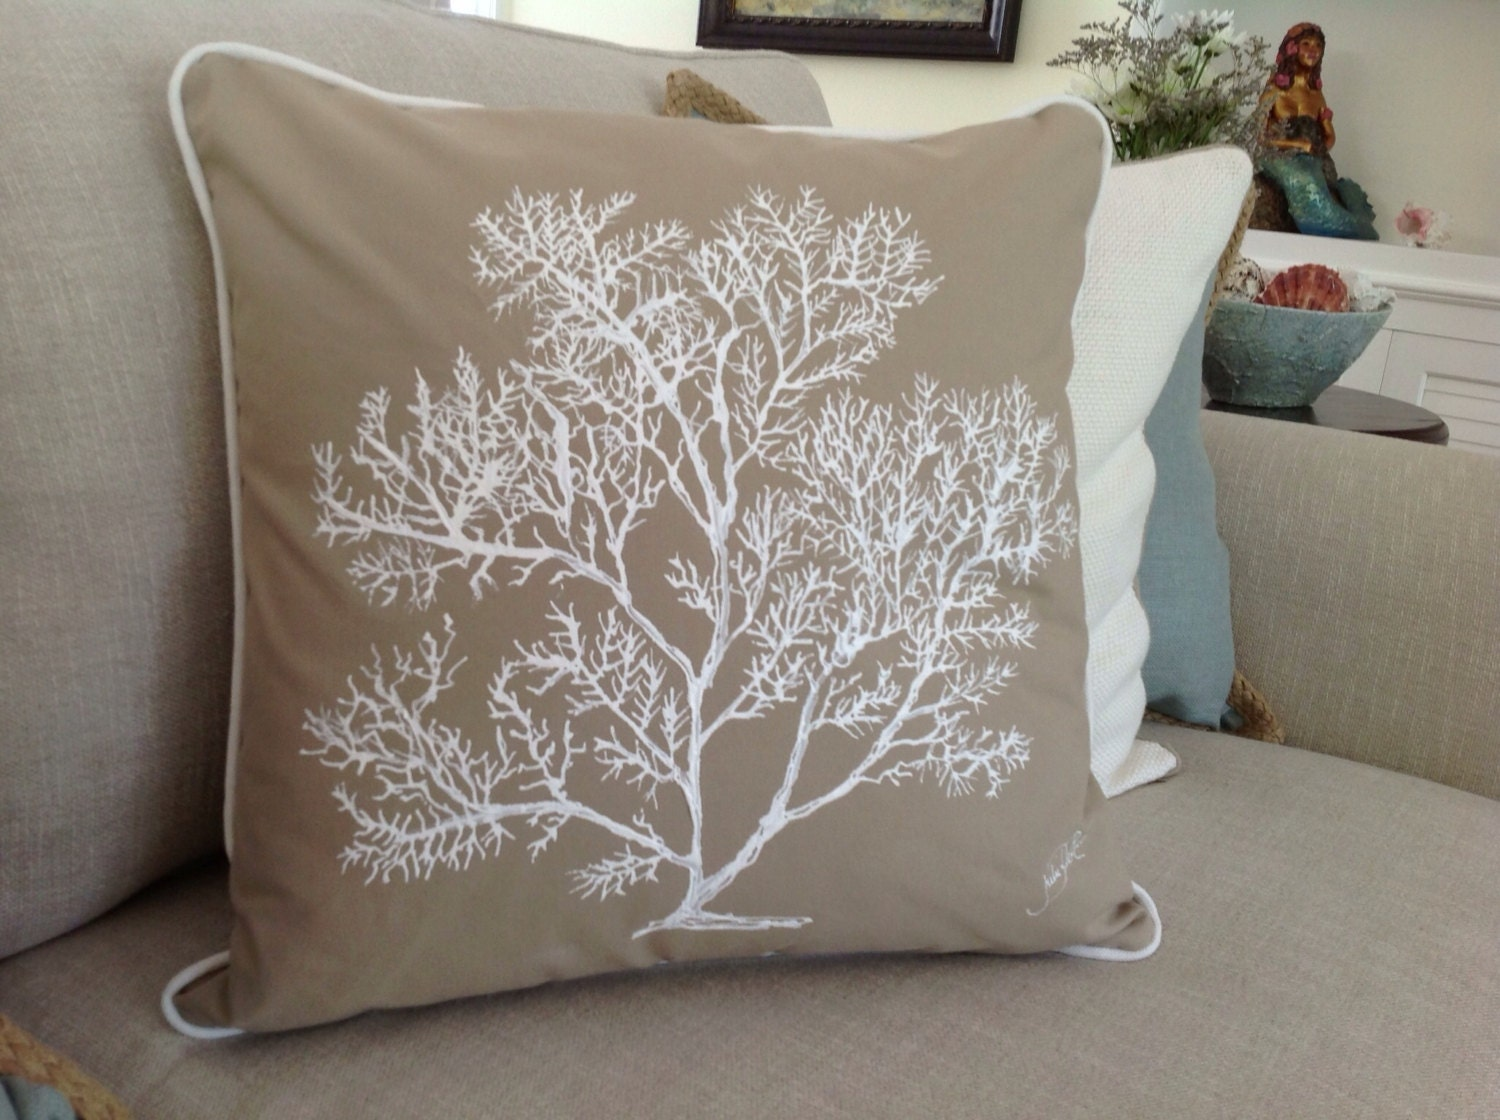 hand painted pillows each pillow useable artwork for your